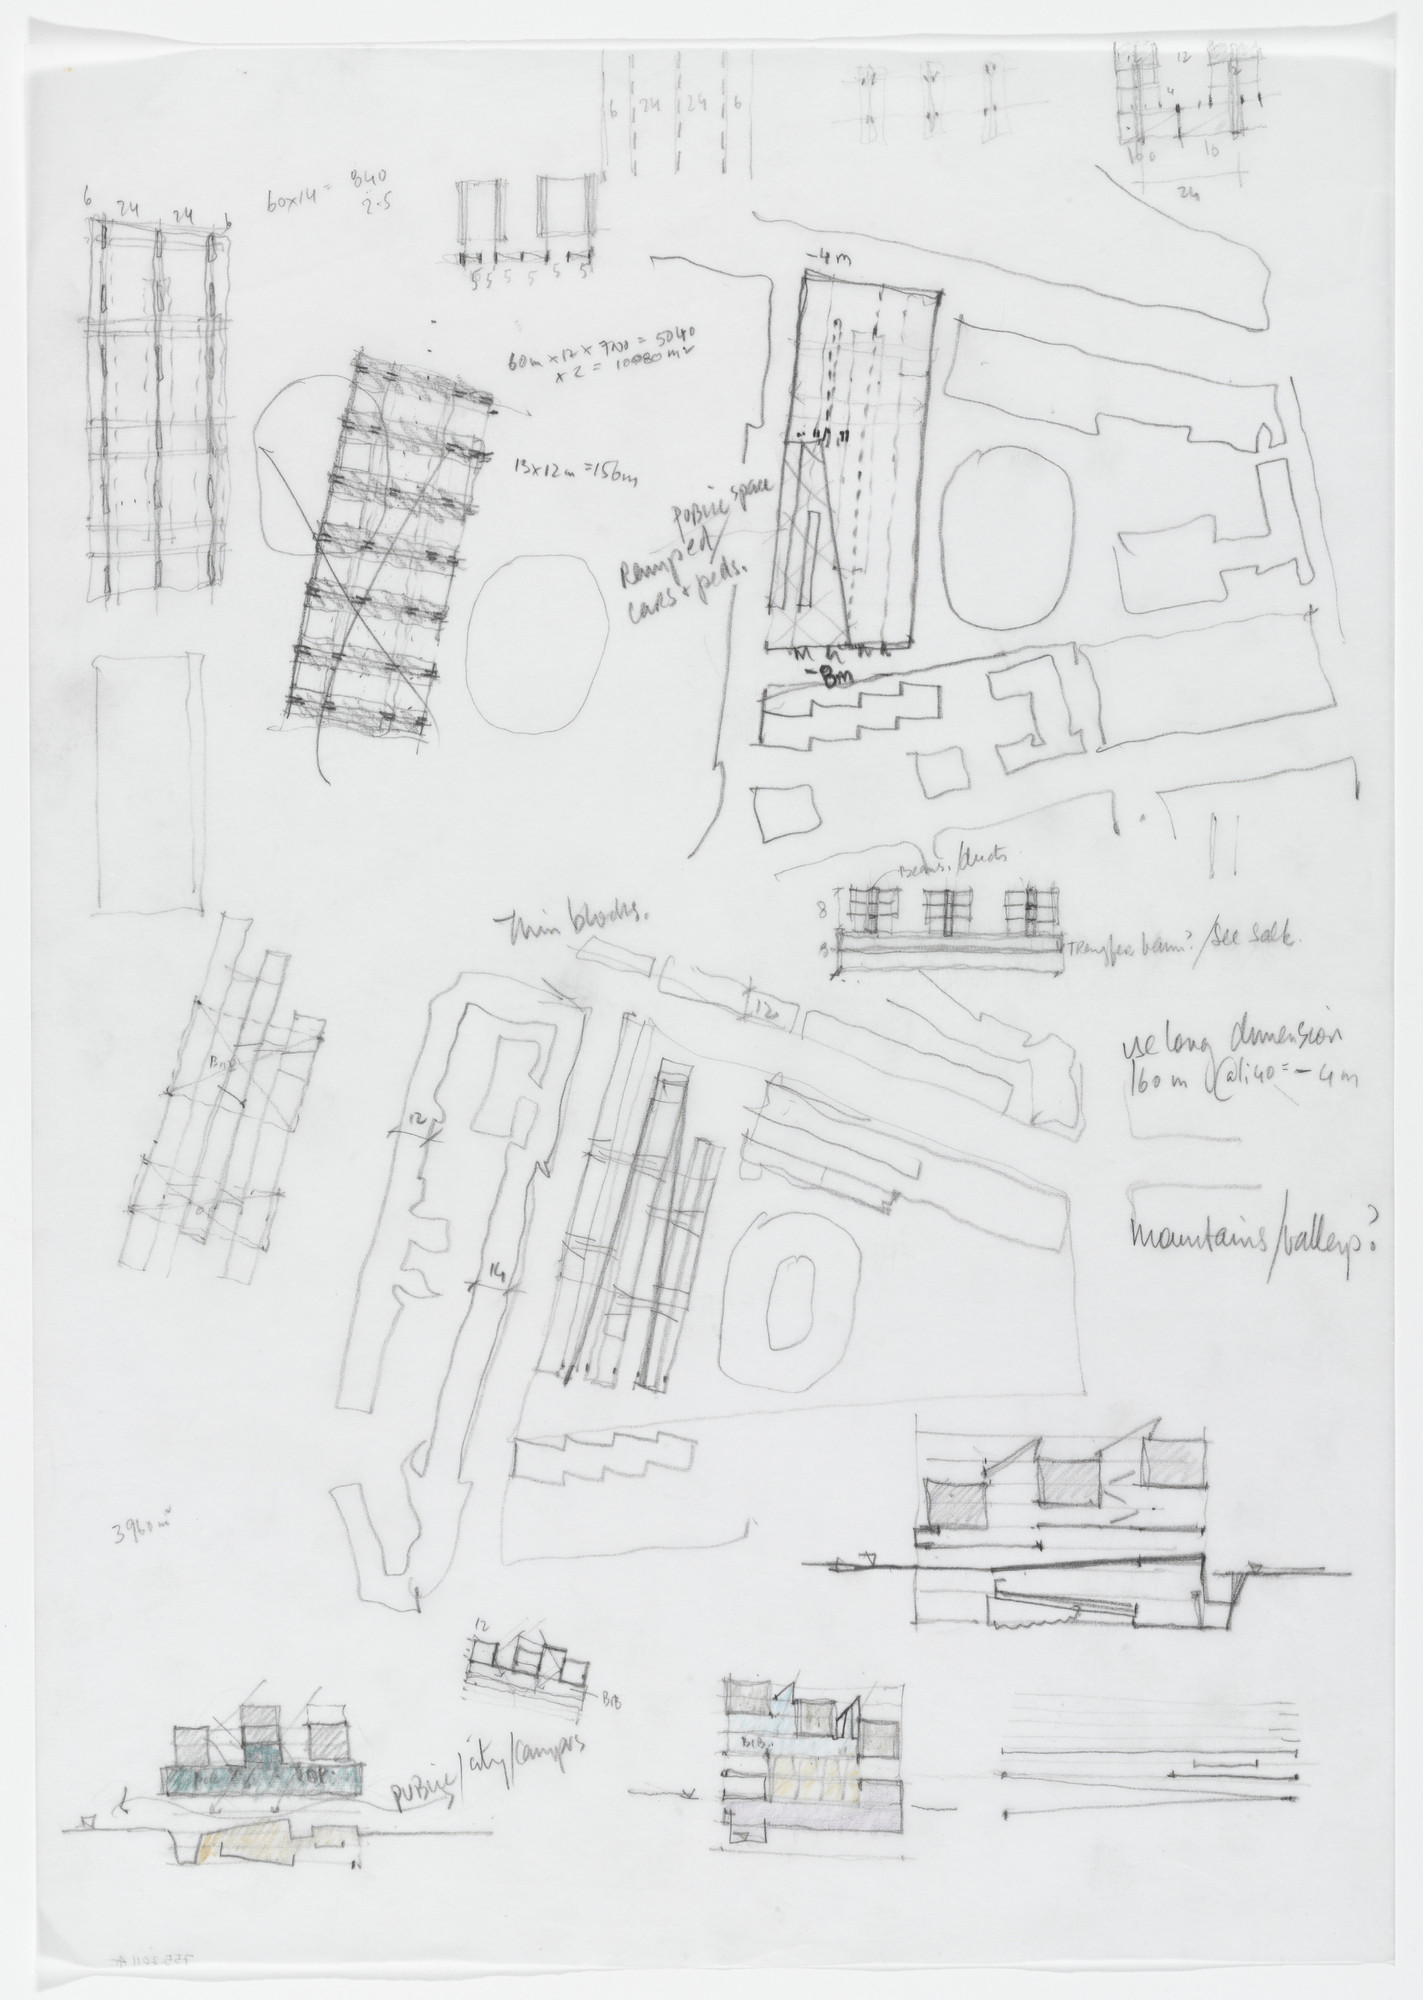 Yvonne Farrell, Shelley McNamara. Luigi Bocconi University, Milan, Italy (Elevation, section and plan sketches with notes). 2001